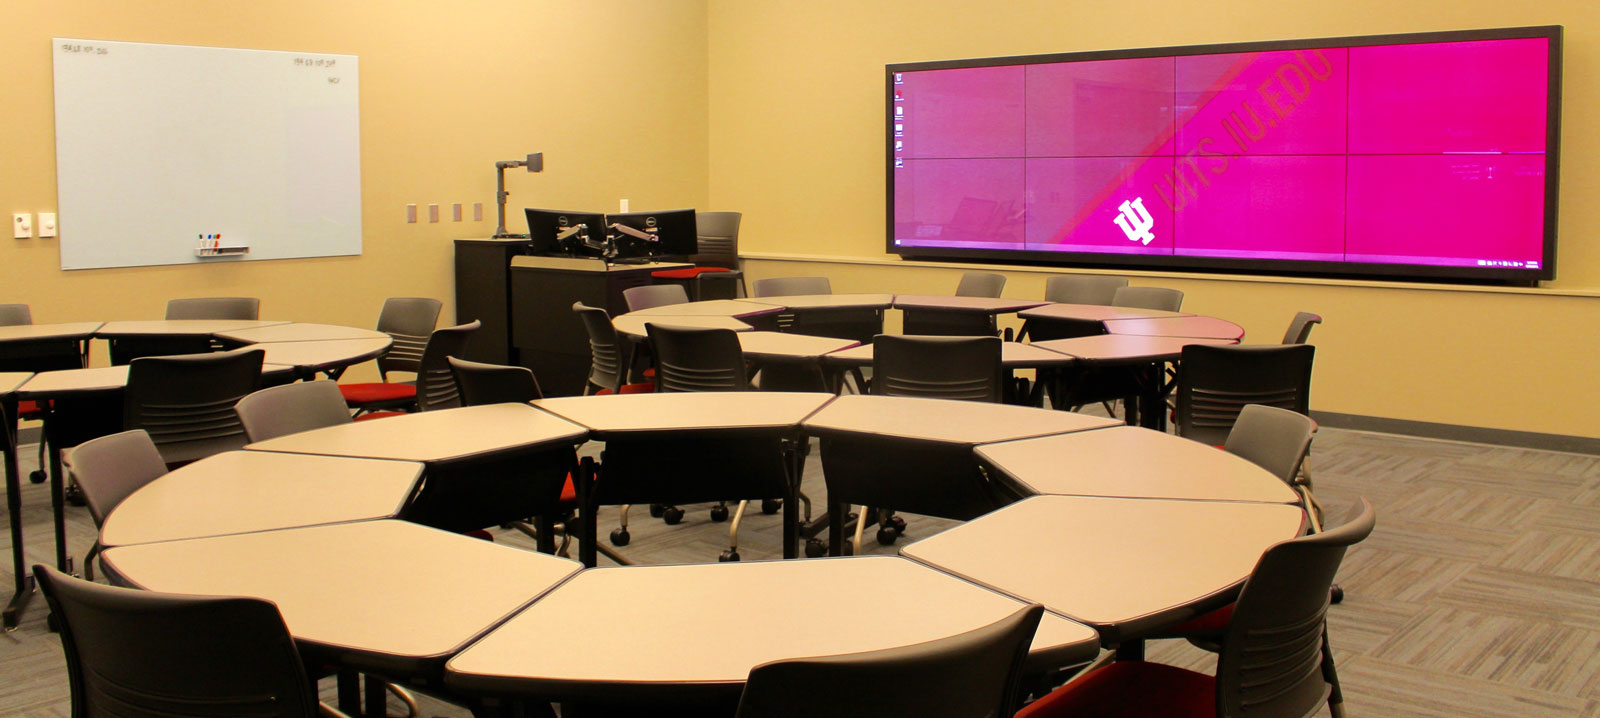 Collaborative Classroom Benefits ~ Immersive showcase classroom learning spaces